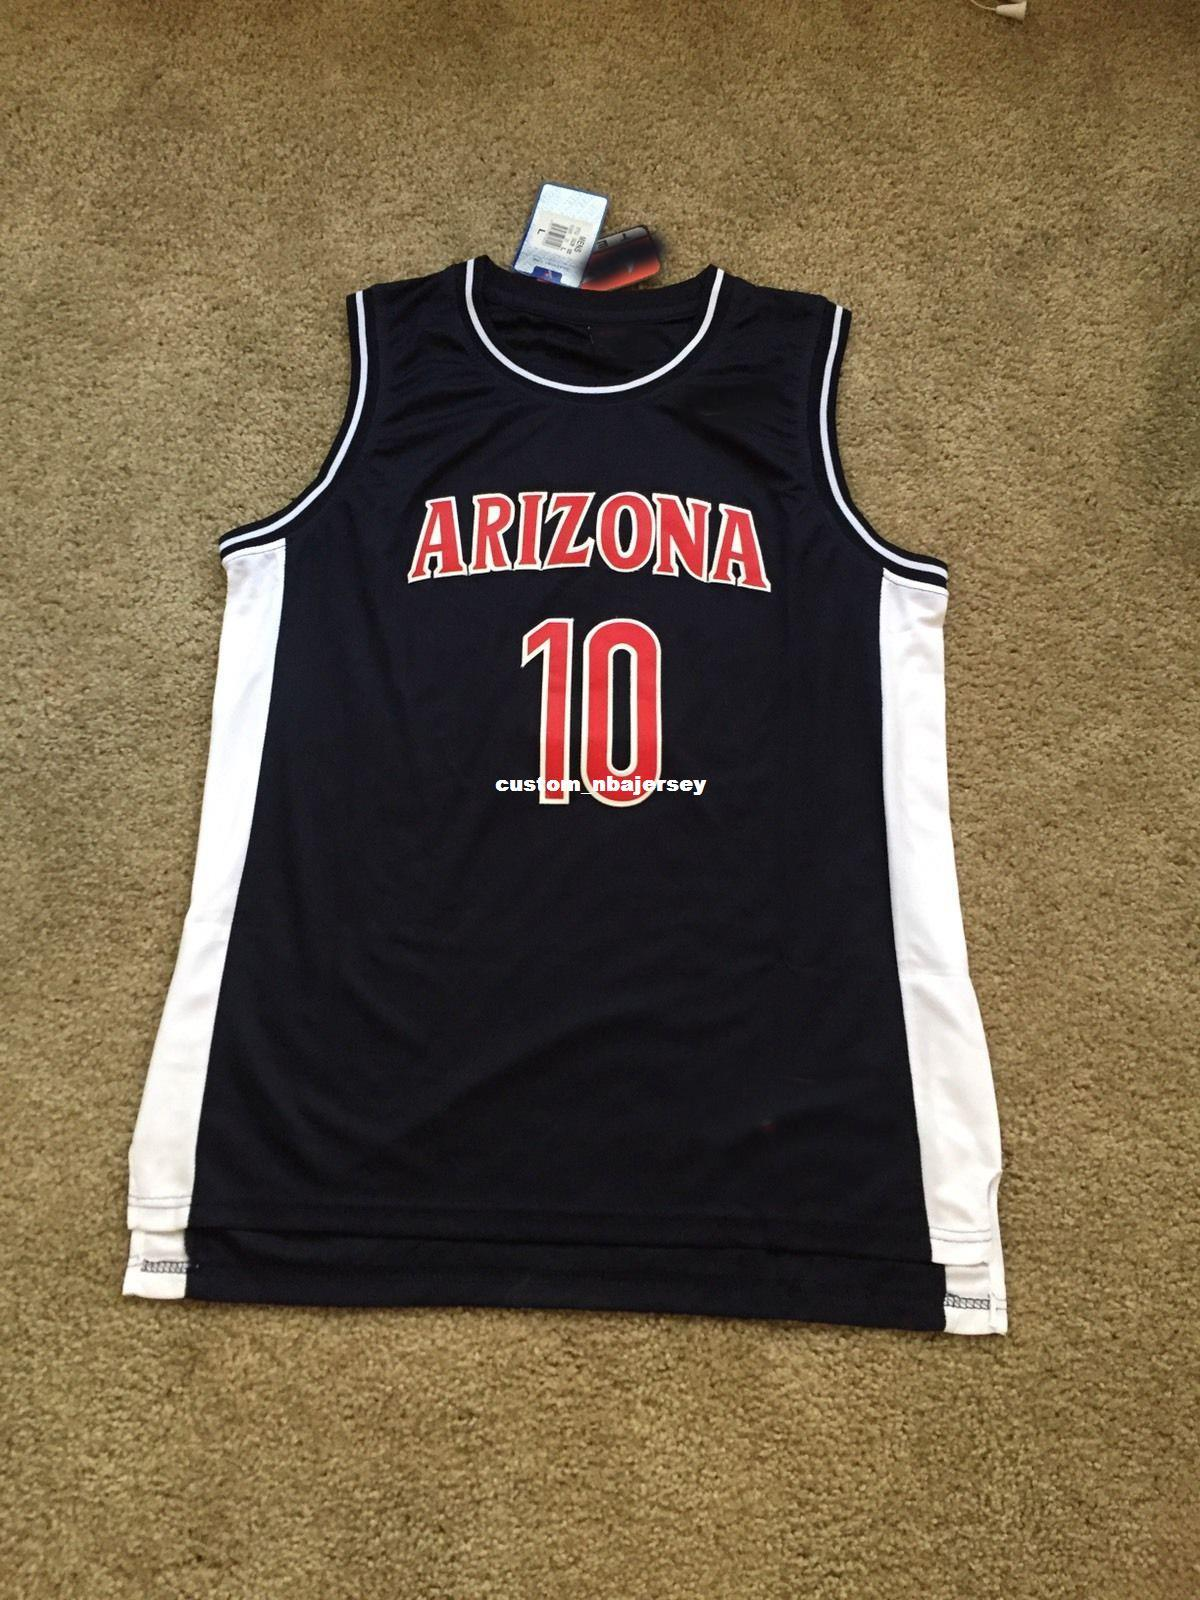 2019 Cheap Custom Vintage Mike Bibby Arizona Wildcats NCAA Basketball Jersey  Stitched Customize Any Number Name MEN WOMEN YOUTH XS 5XL From  Custom nbajersey ... 0961b6156